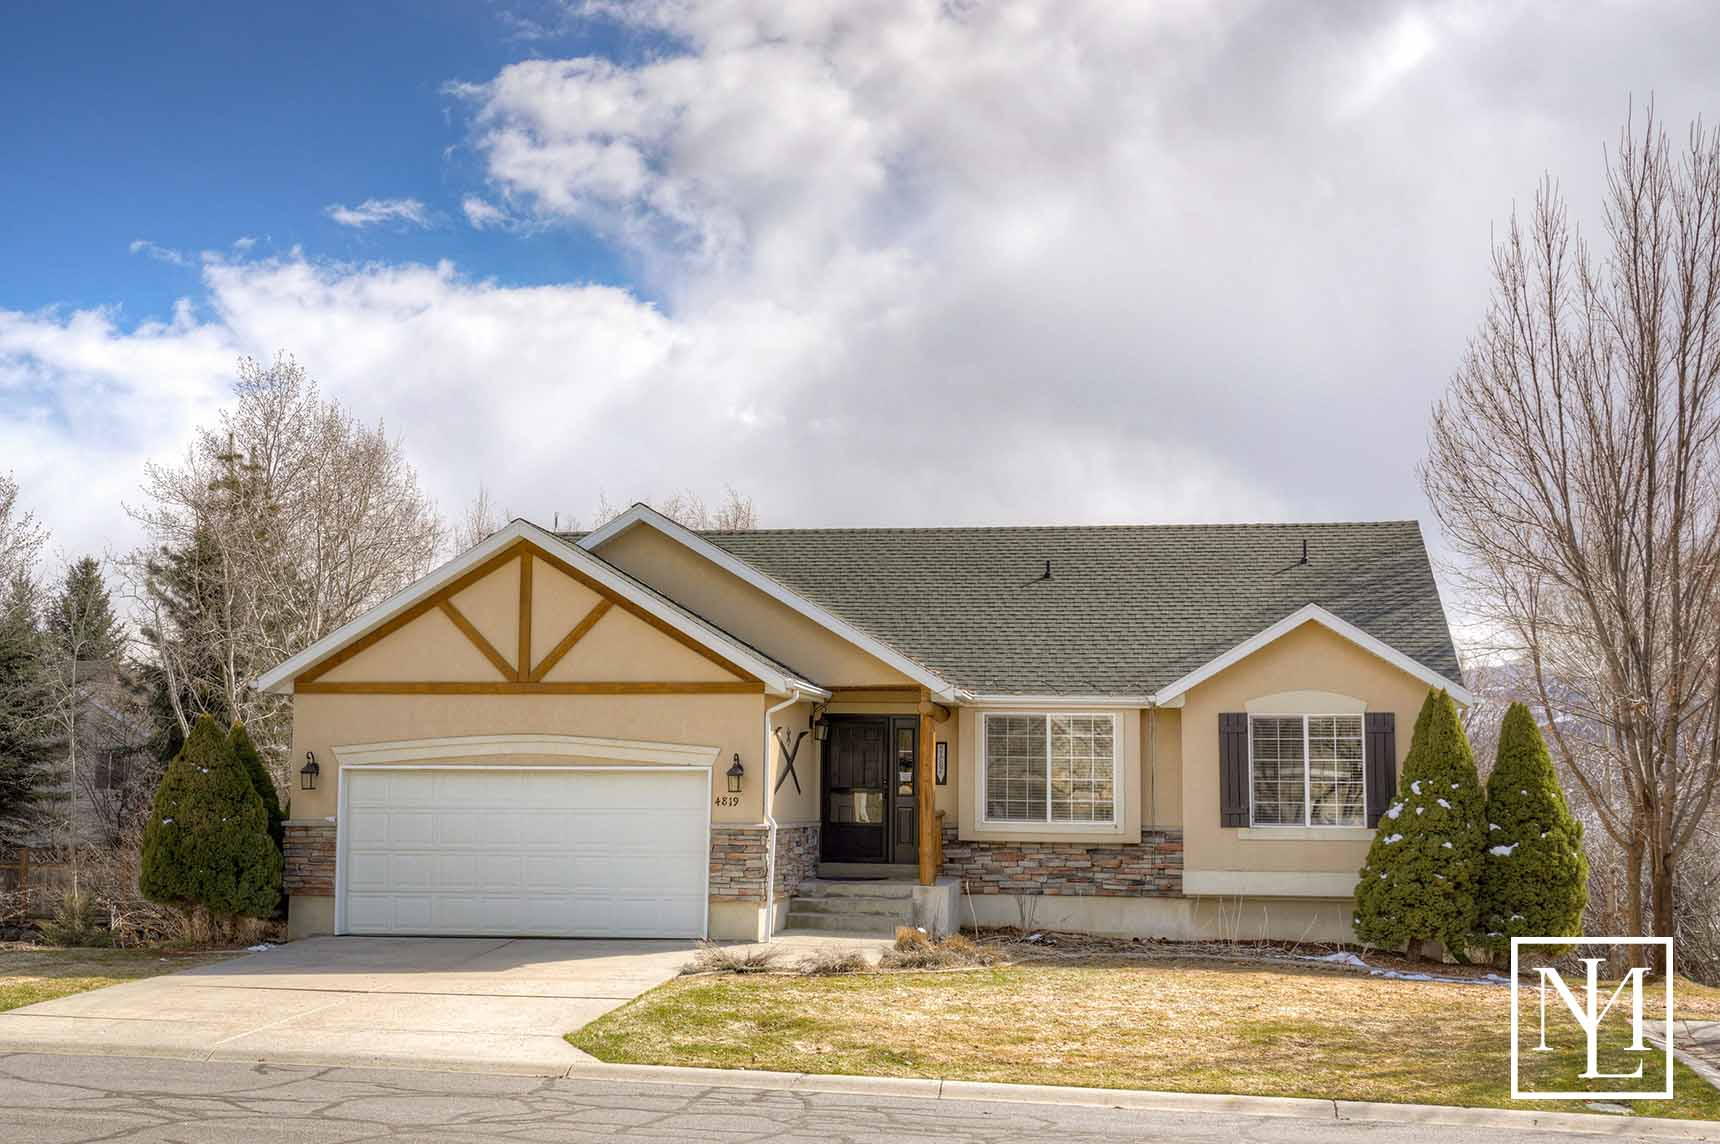 4819 E Fairway Oaks Dr Eden, UT 84310 100